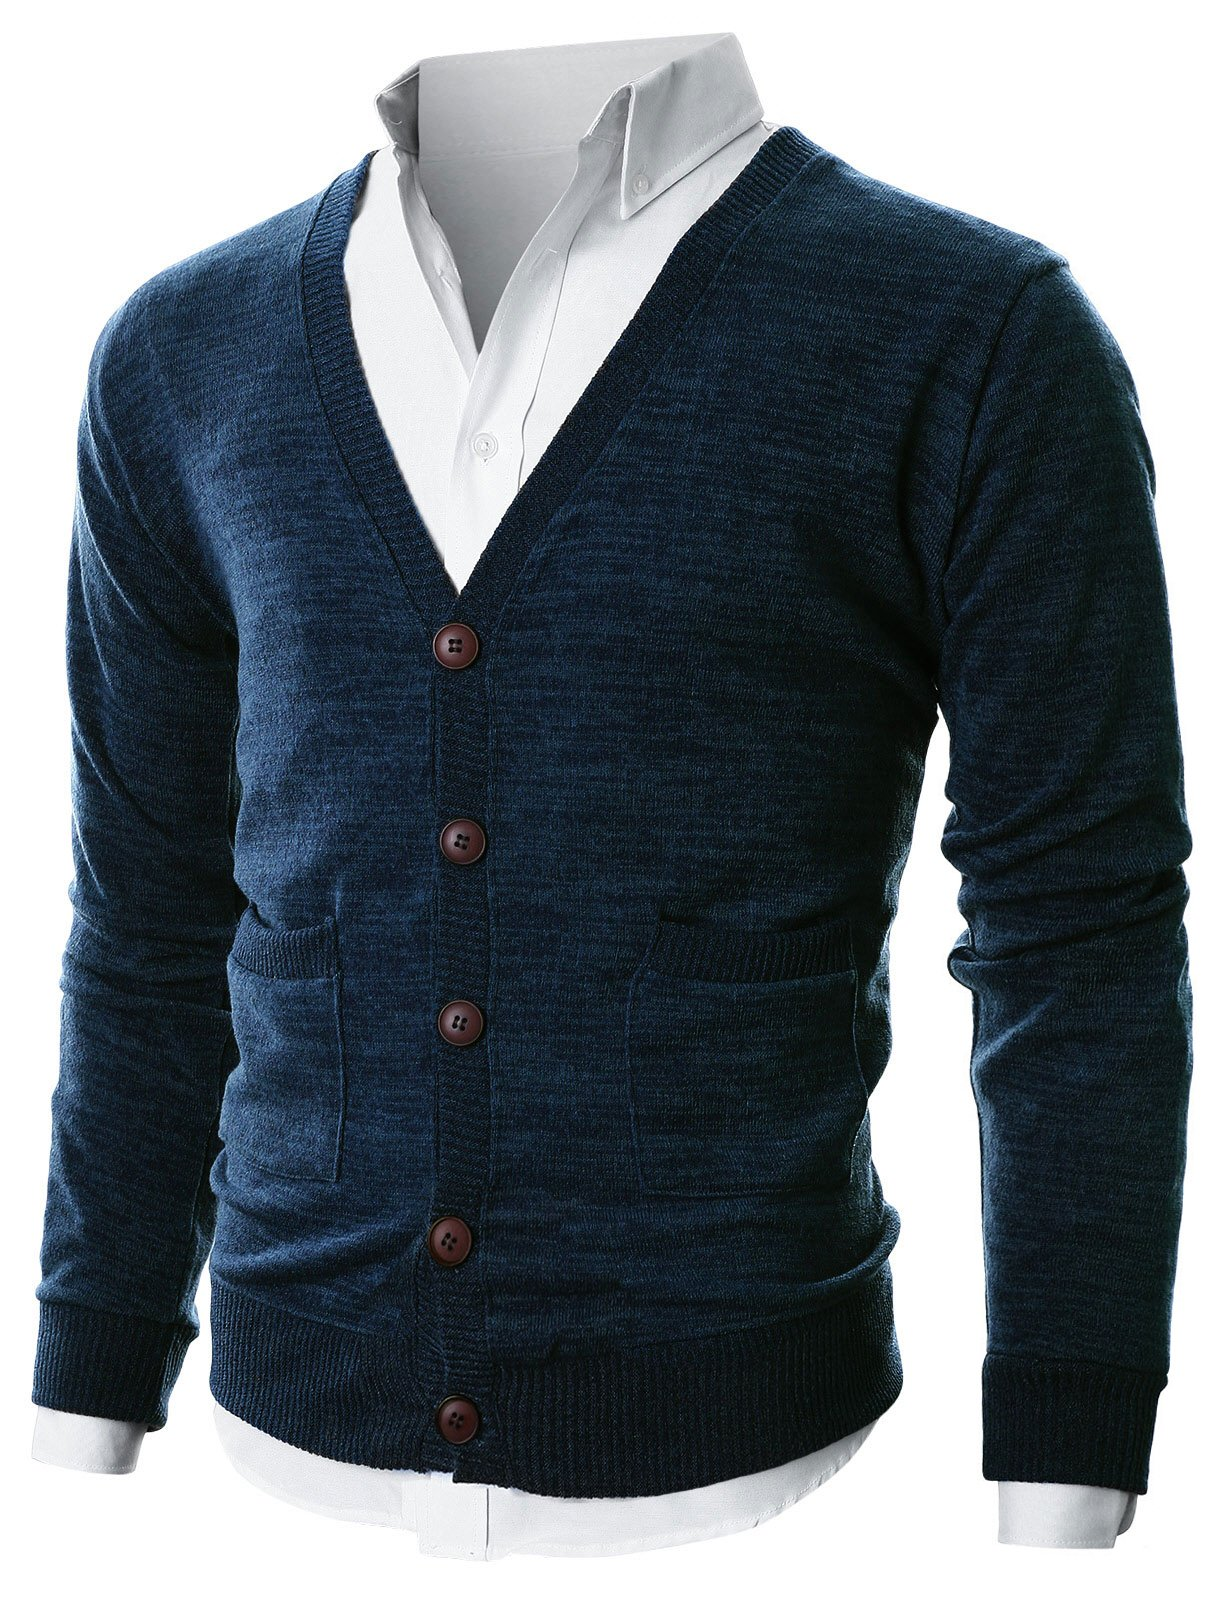 Ohoo Mens Slim Fit Ribbed Knit Cardigan With Pockets/DCC023-NAVY-XL